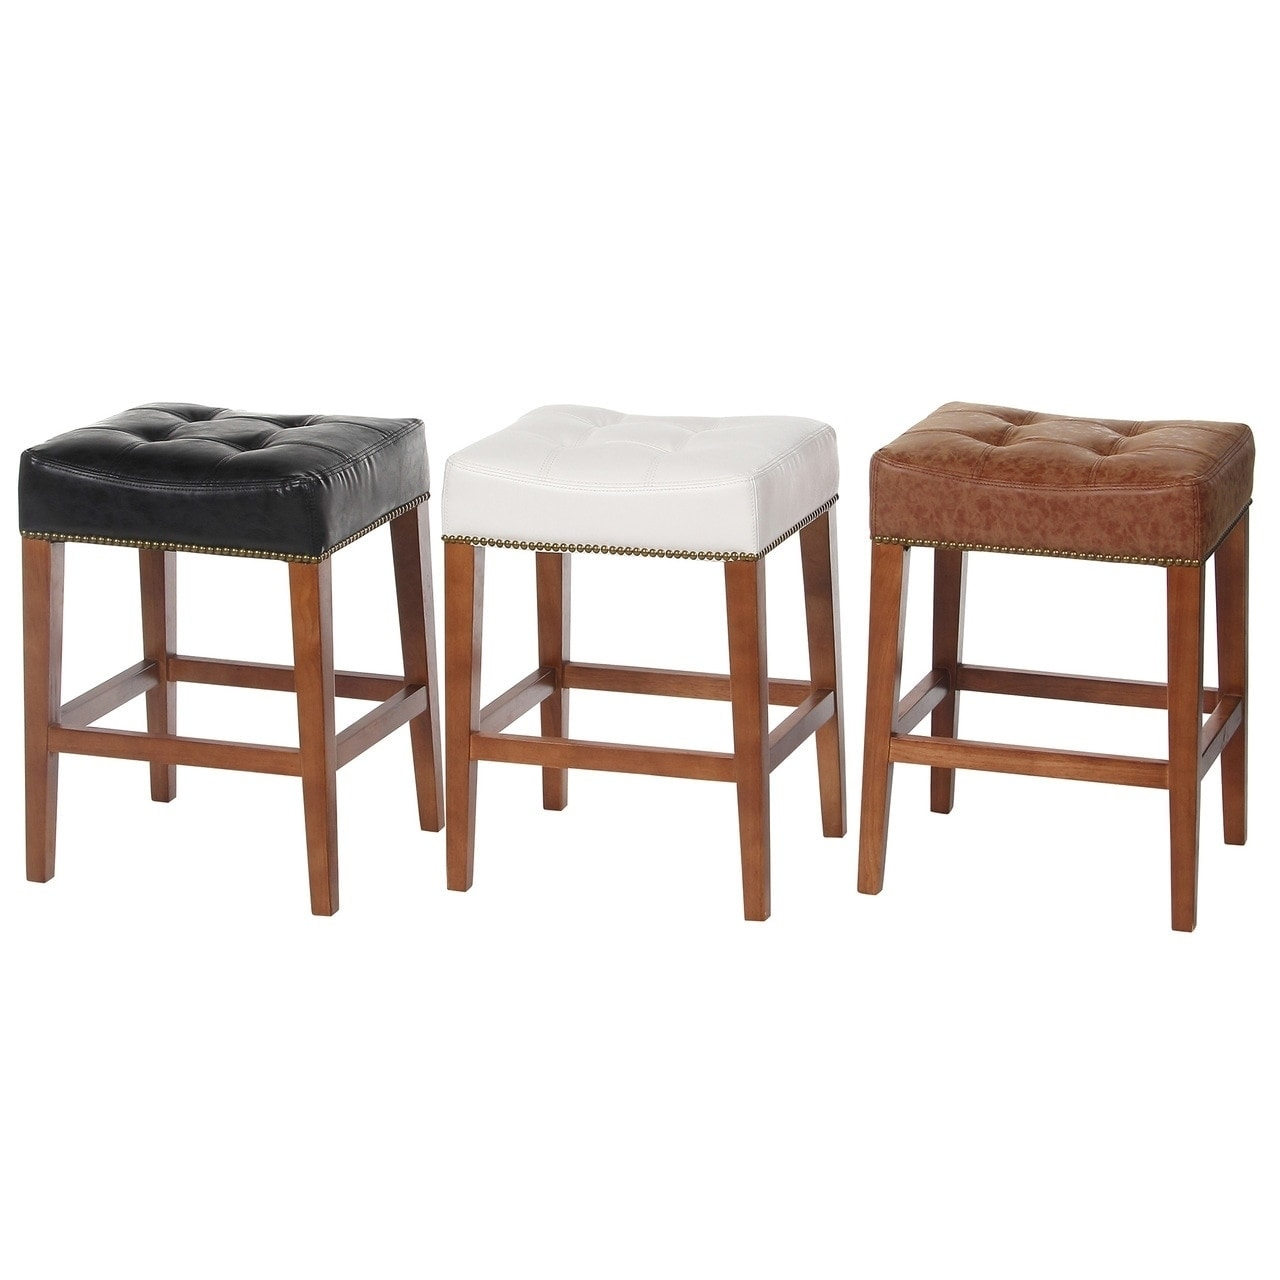 Nashville 24 Inch Low Counter Stool Vintage Leather Nailhead Trim